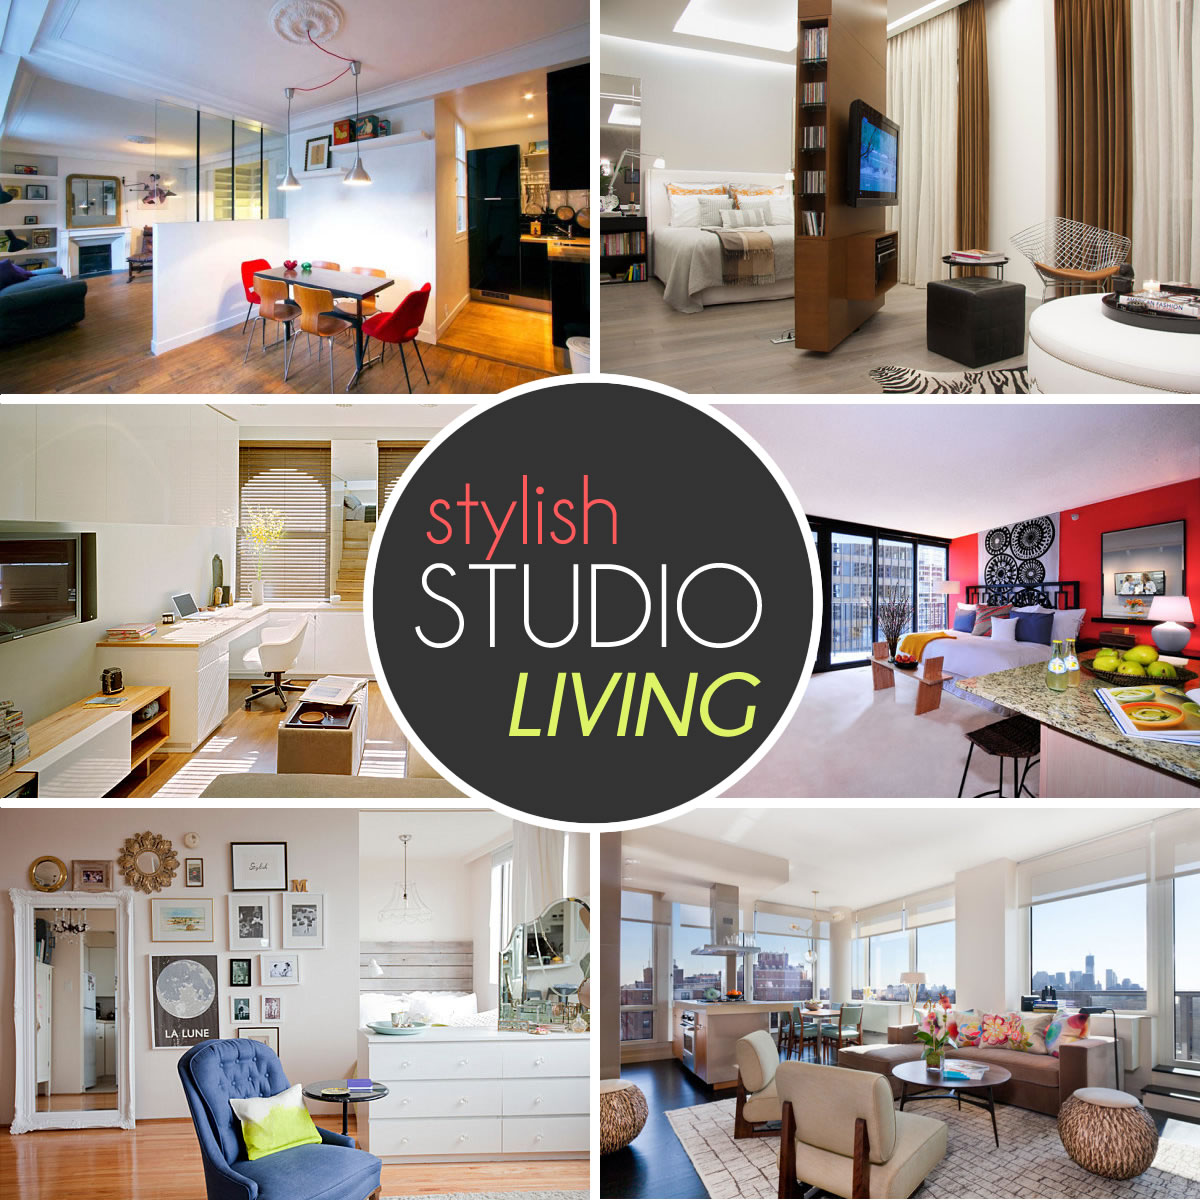 The design lover 39 s guide to stylish studio living for Studio ideas